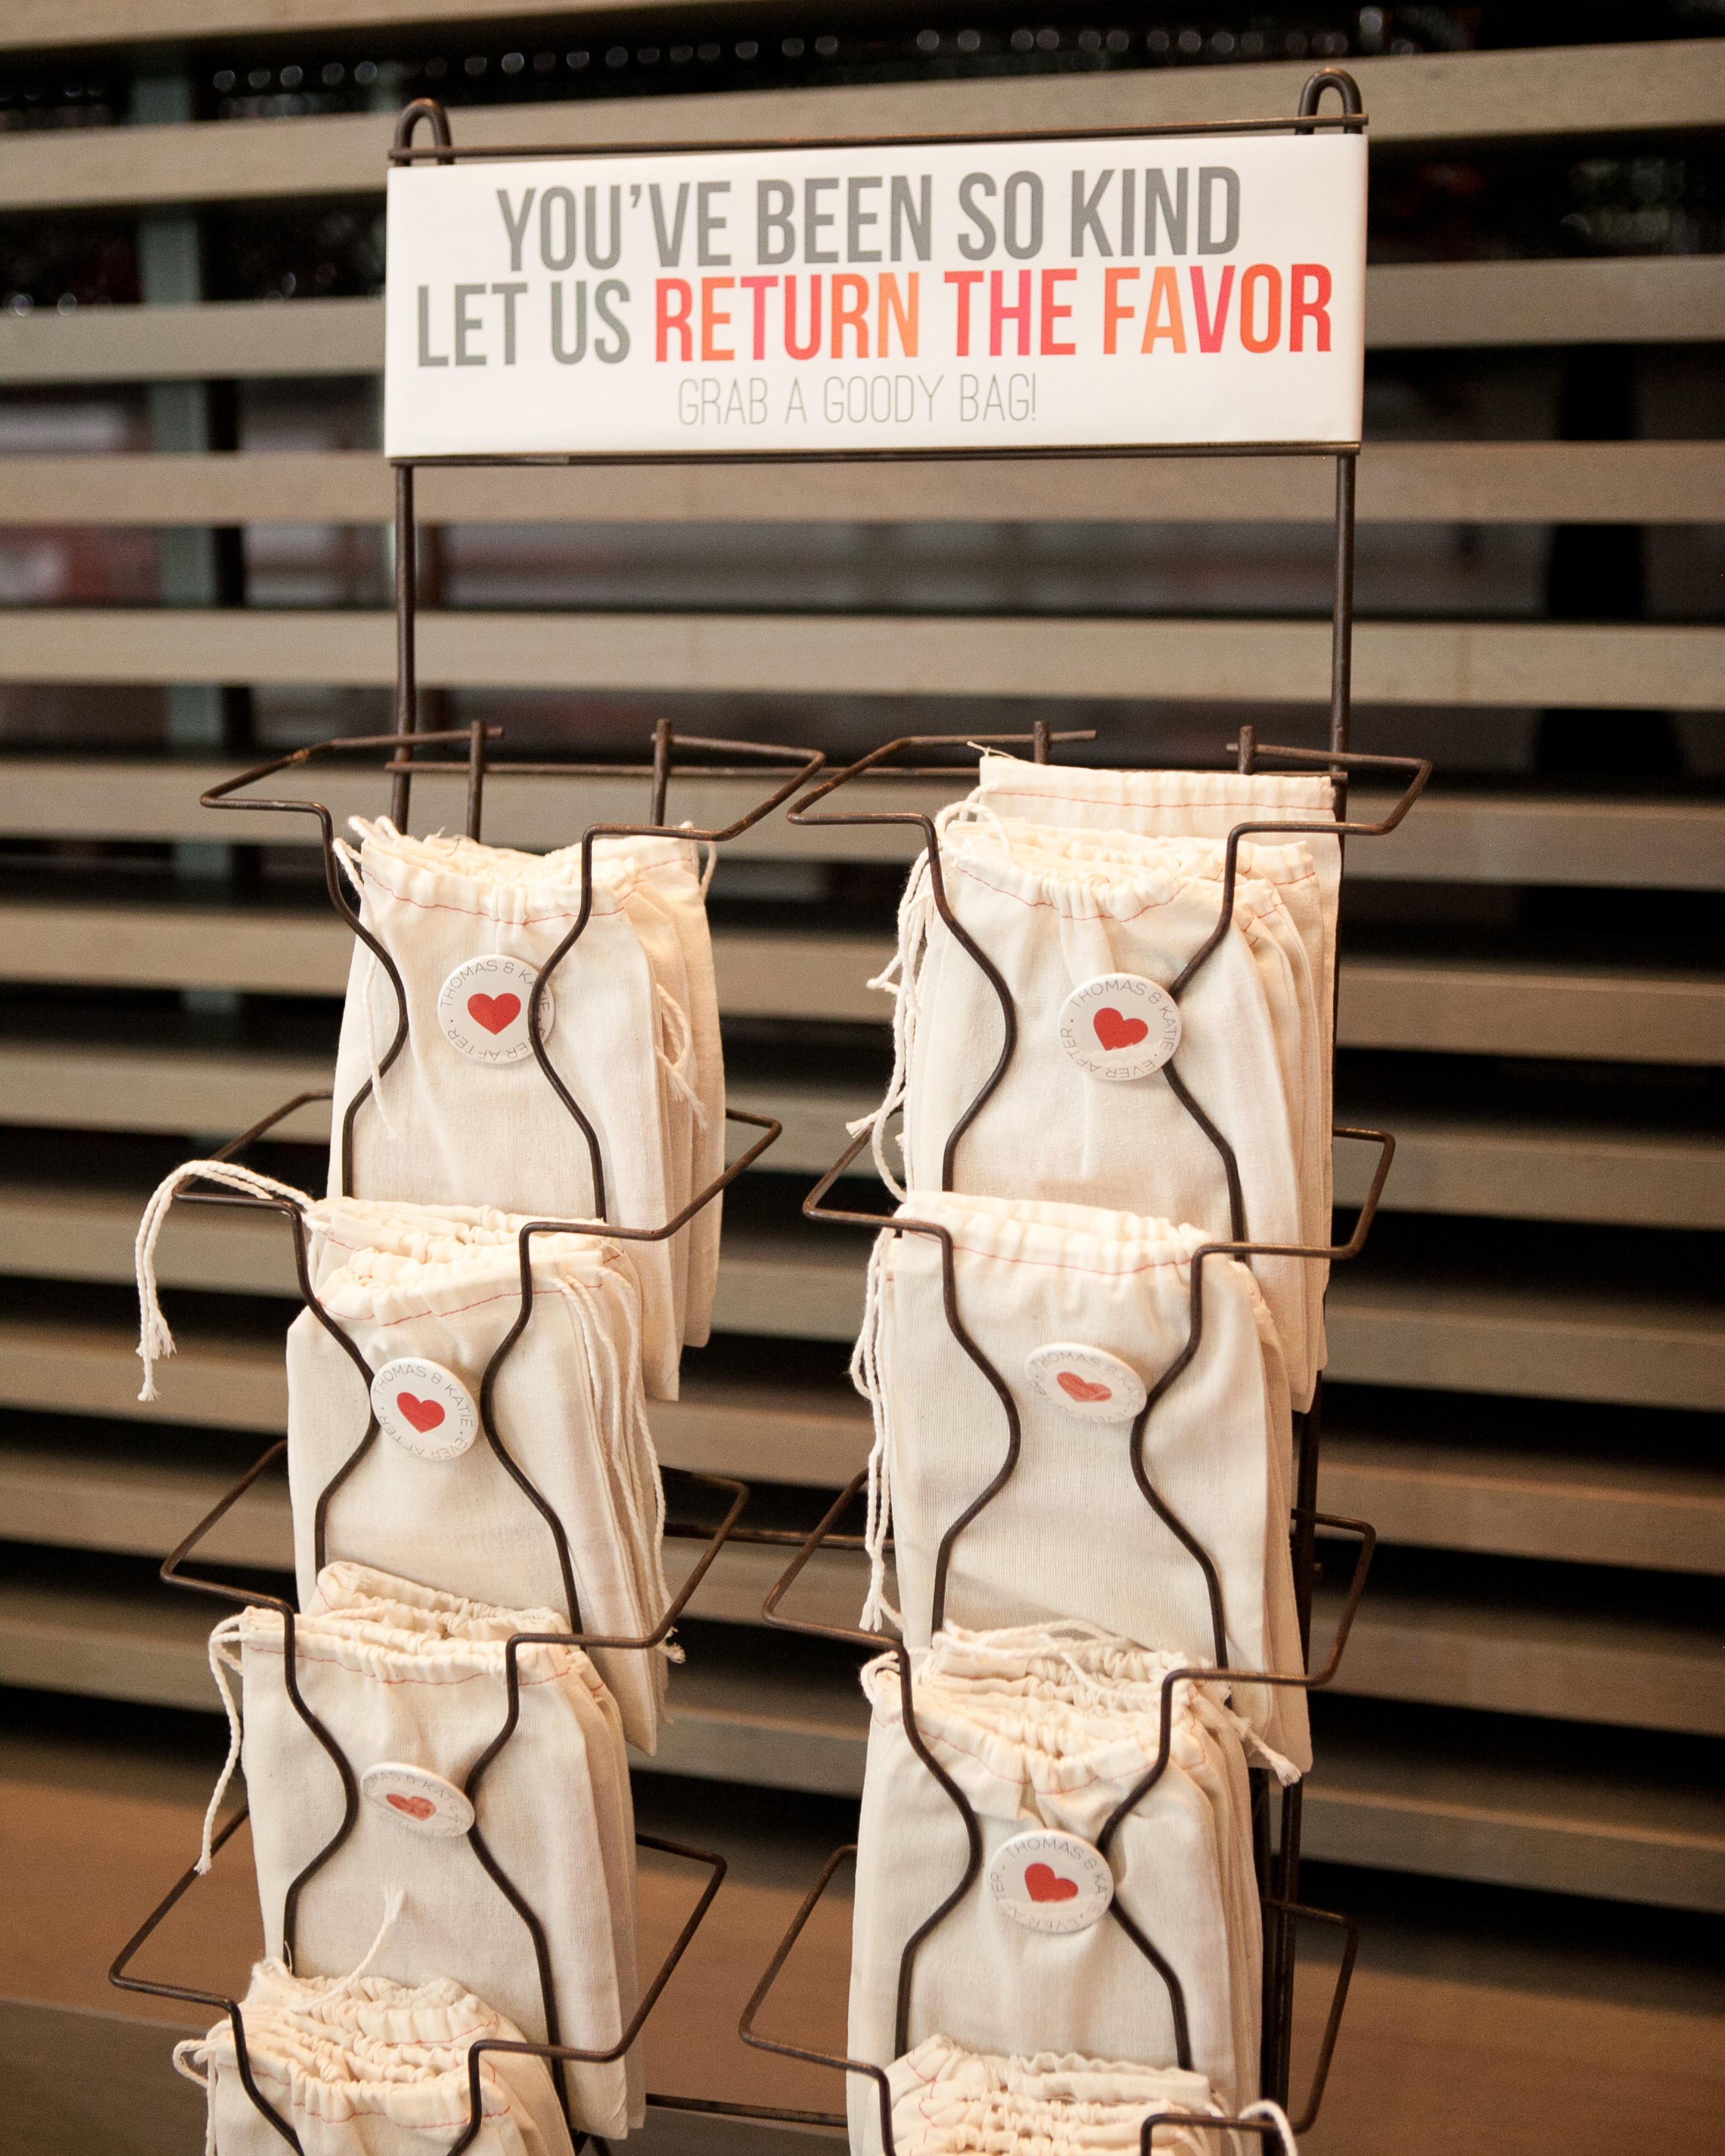 The Favor Display